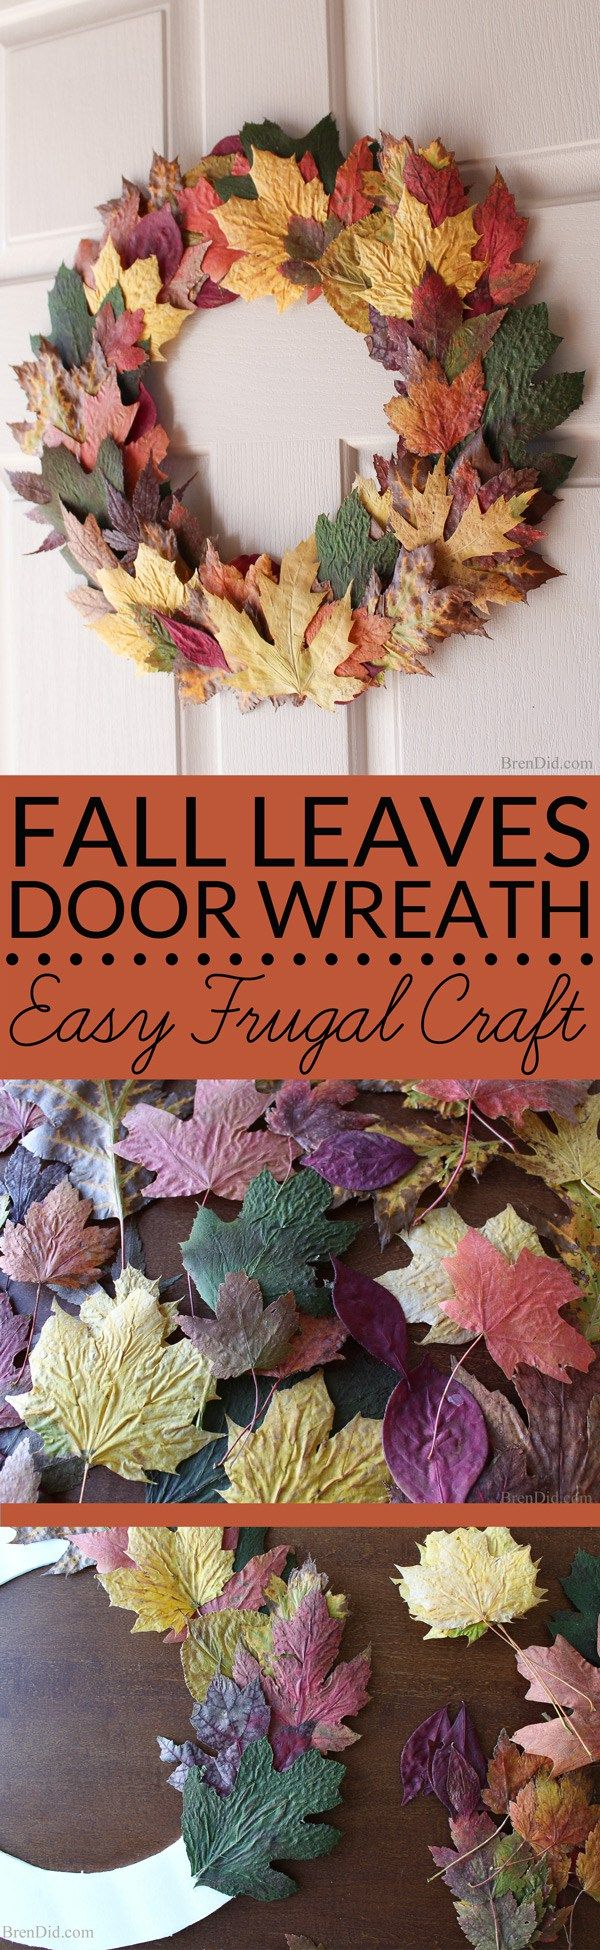 Pressed fall leaves can be made into a lovely and frugal front door wreath…